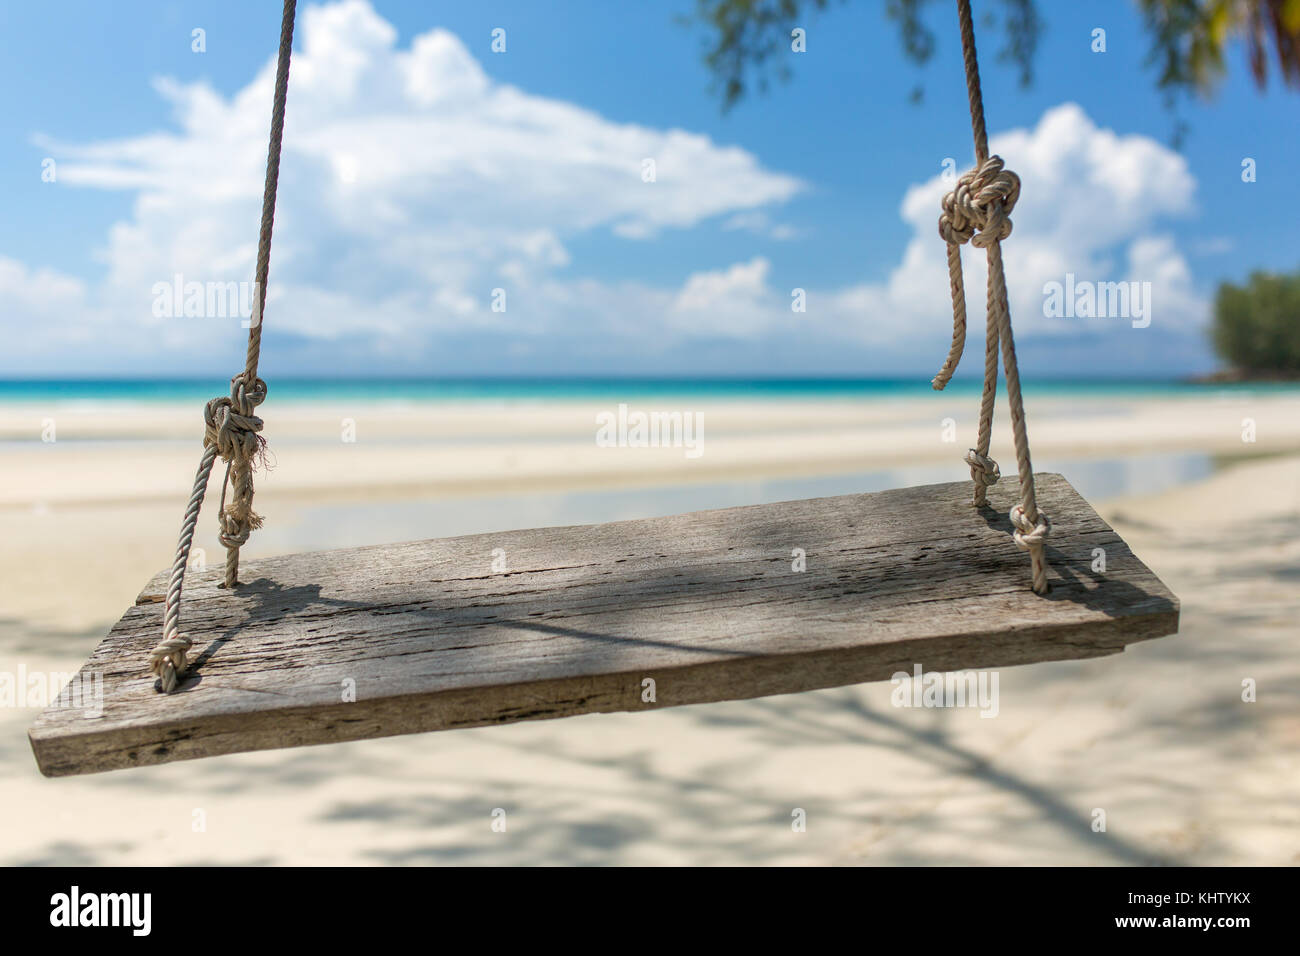 swing chair thailand outdoor covers australia tree wooden stock photos and